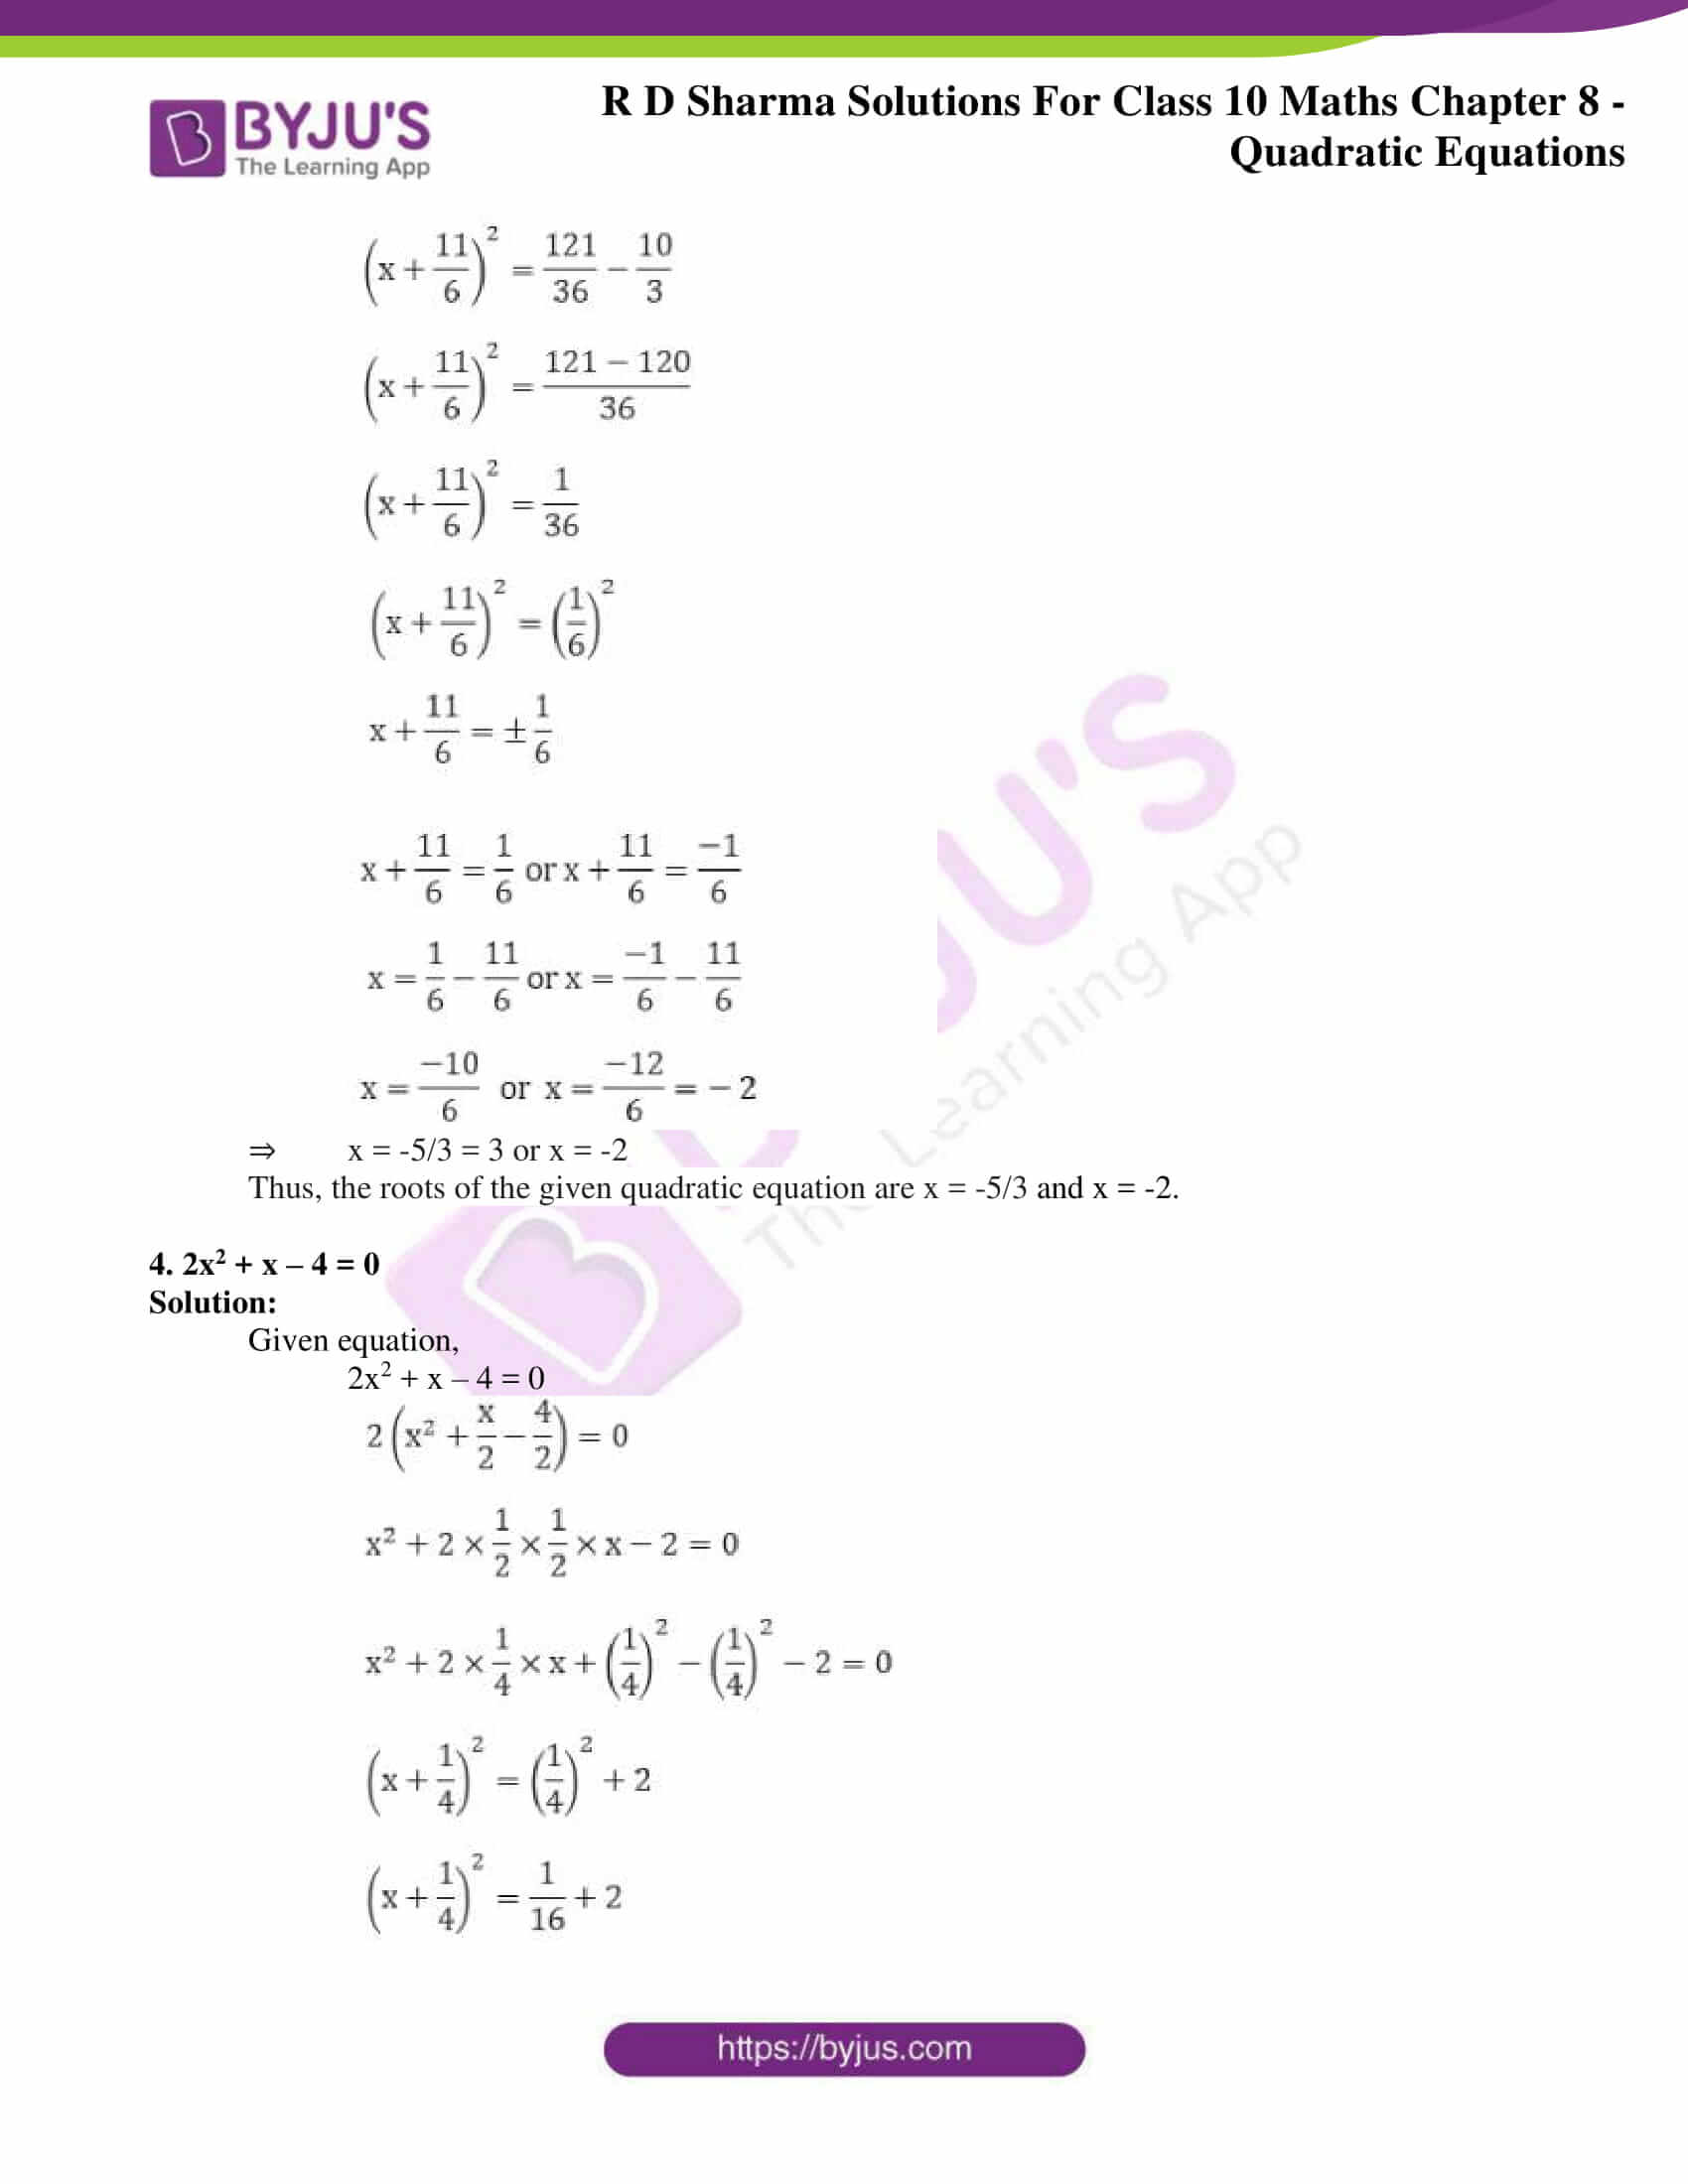 RD Sharma Solutions for Class 10 Chapter 8 Quadratic Equations 26